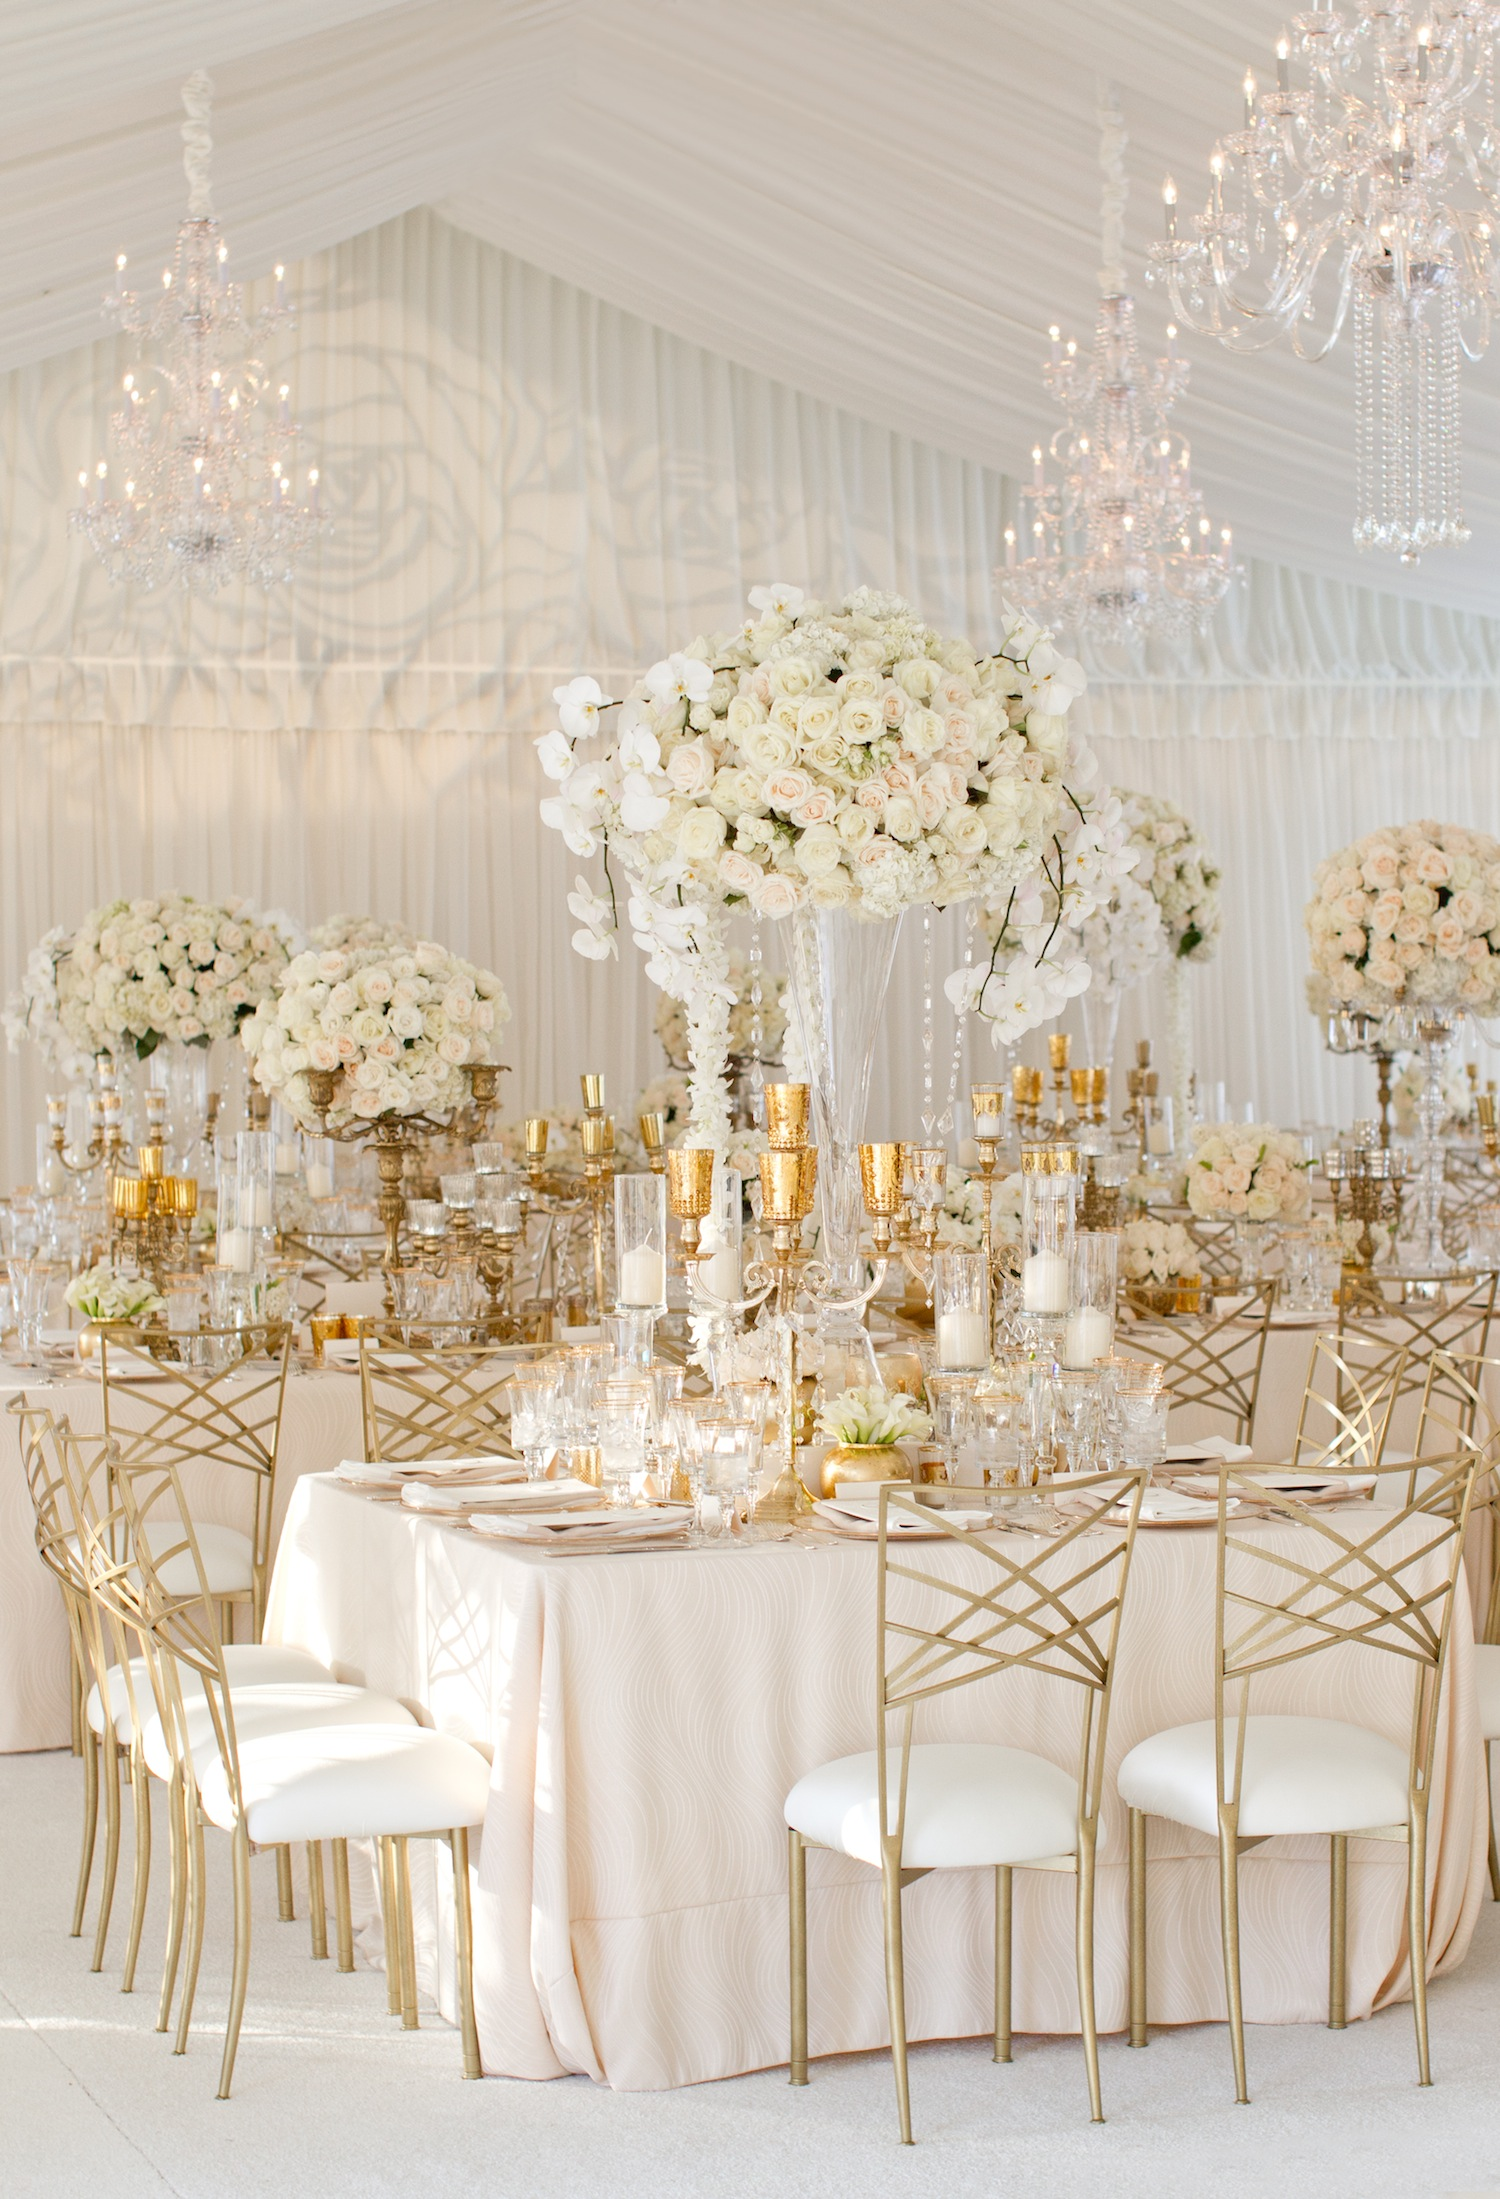 White And Gold Chair Wedding Ideas Pretty And Unique Reception Seating Inside